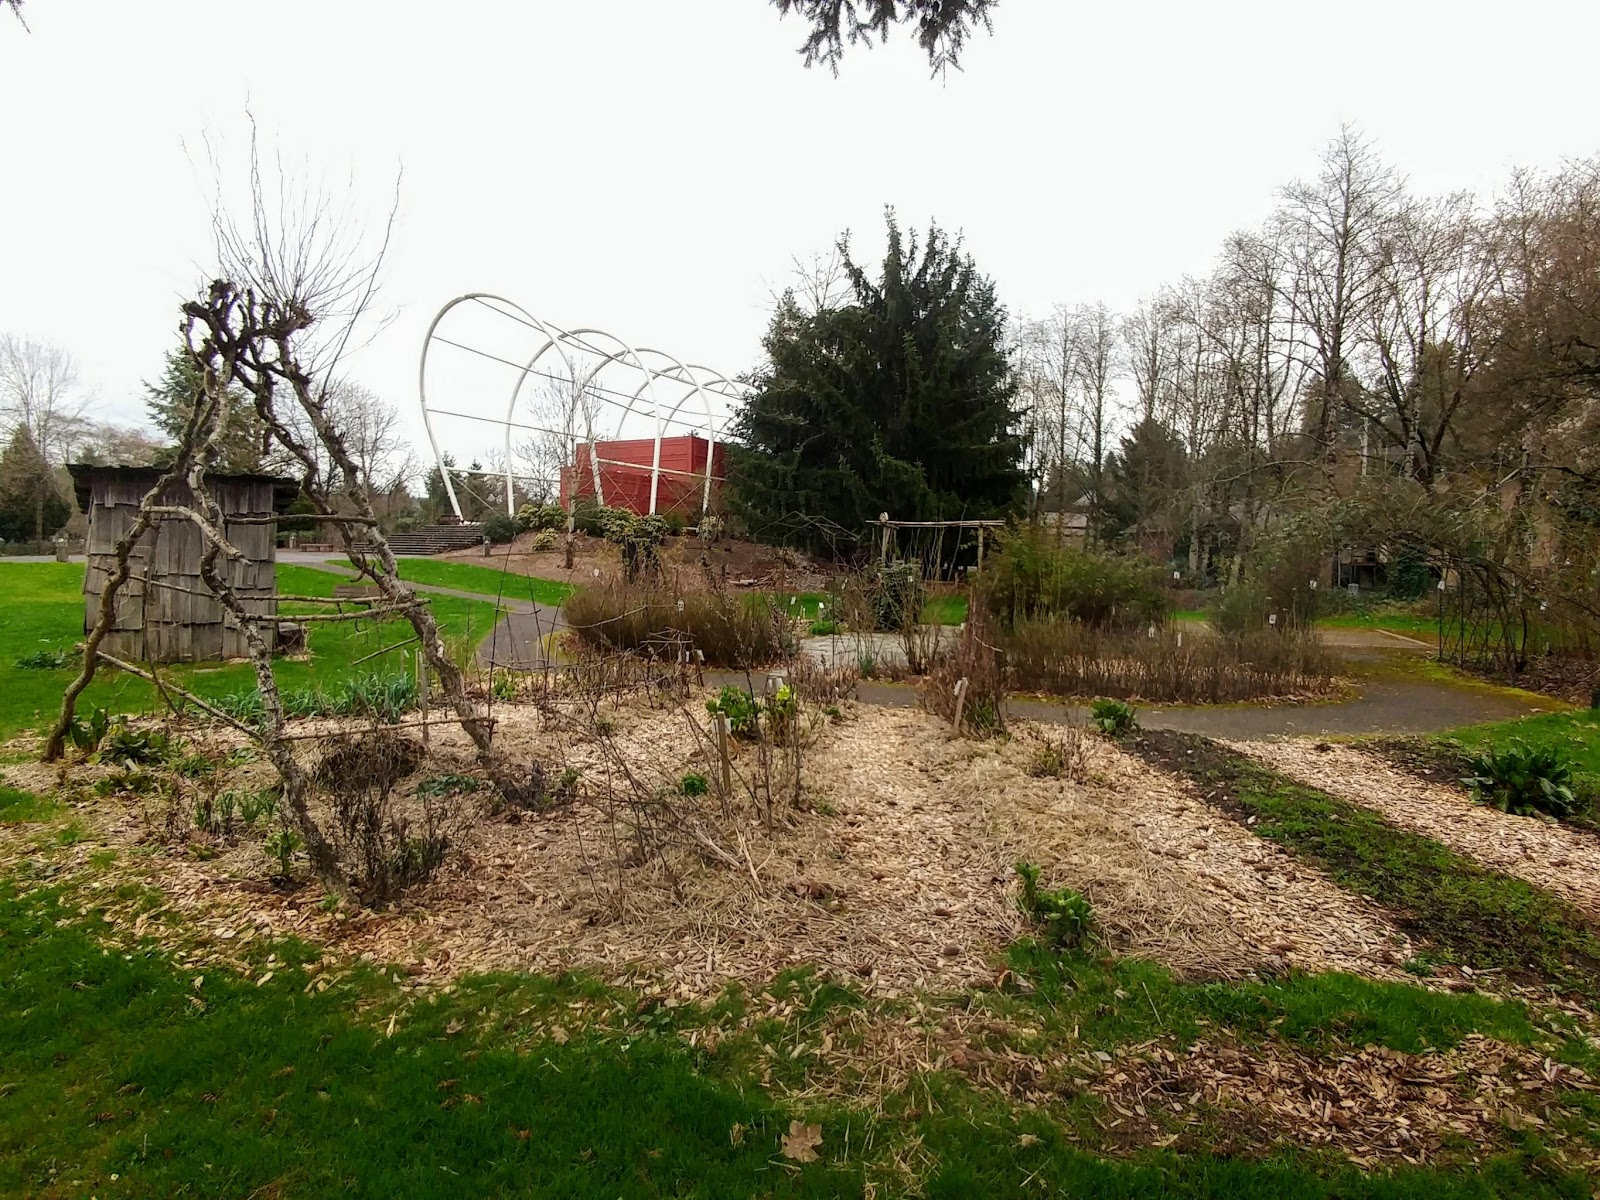 End of the Oregon Trail Pioneer Gardens: Shhh, The Garden is Sleeping.